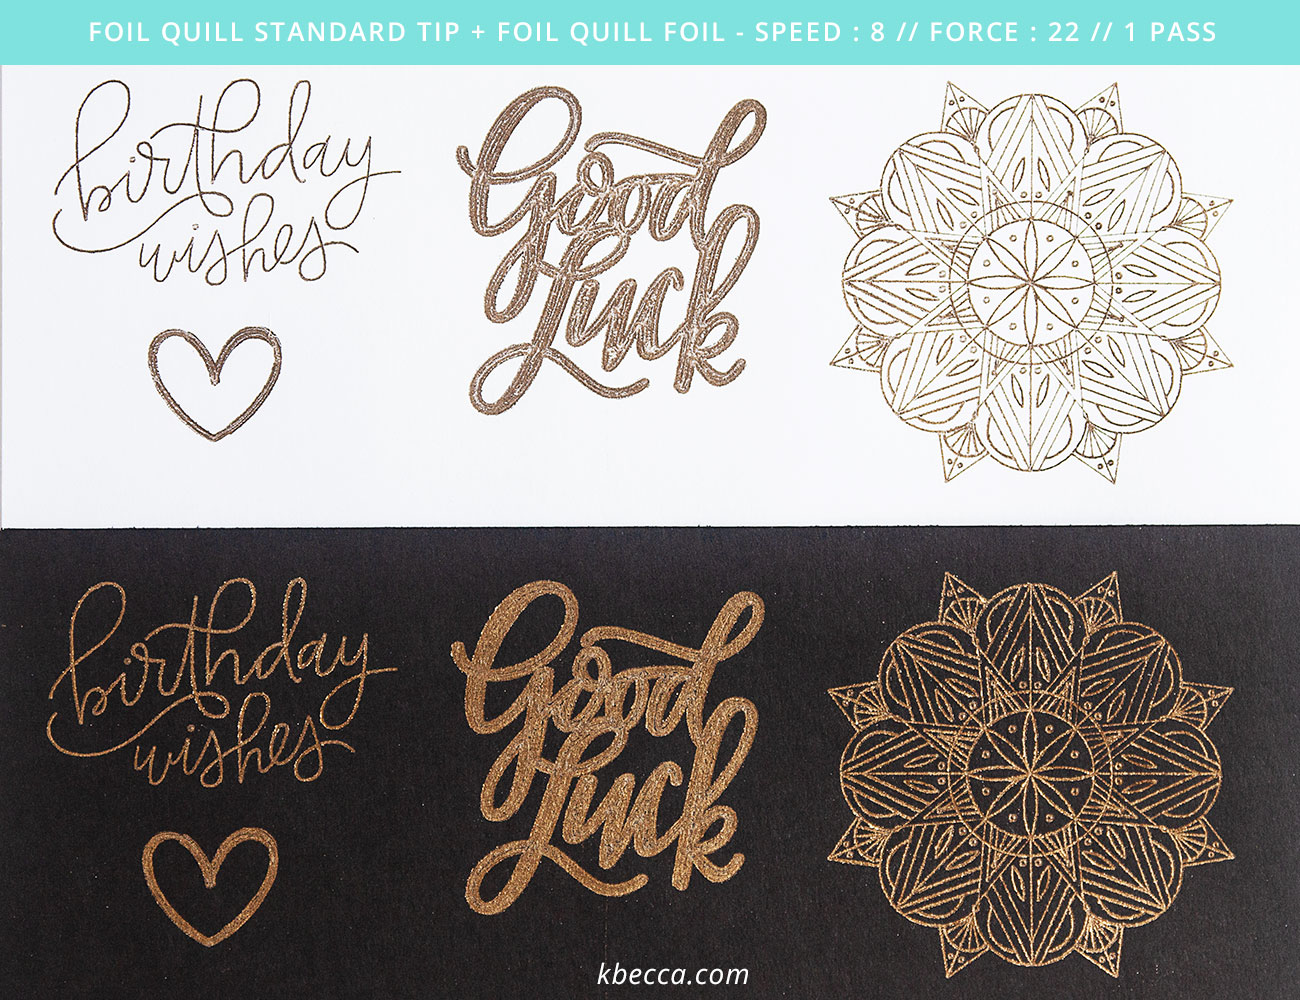 We R Memory Keepers Foil Quill Standard Tip Results with Foil Quill Brand Foil #foilquill #silhouettecameo